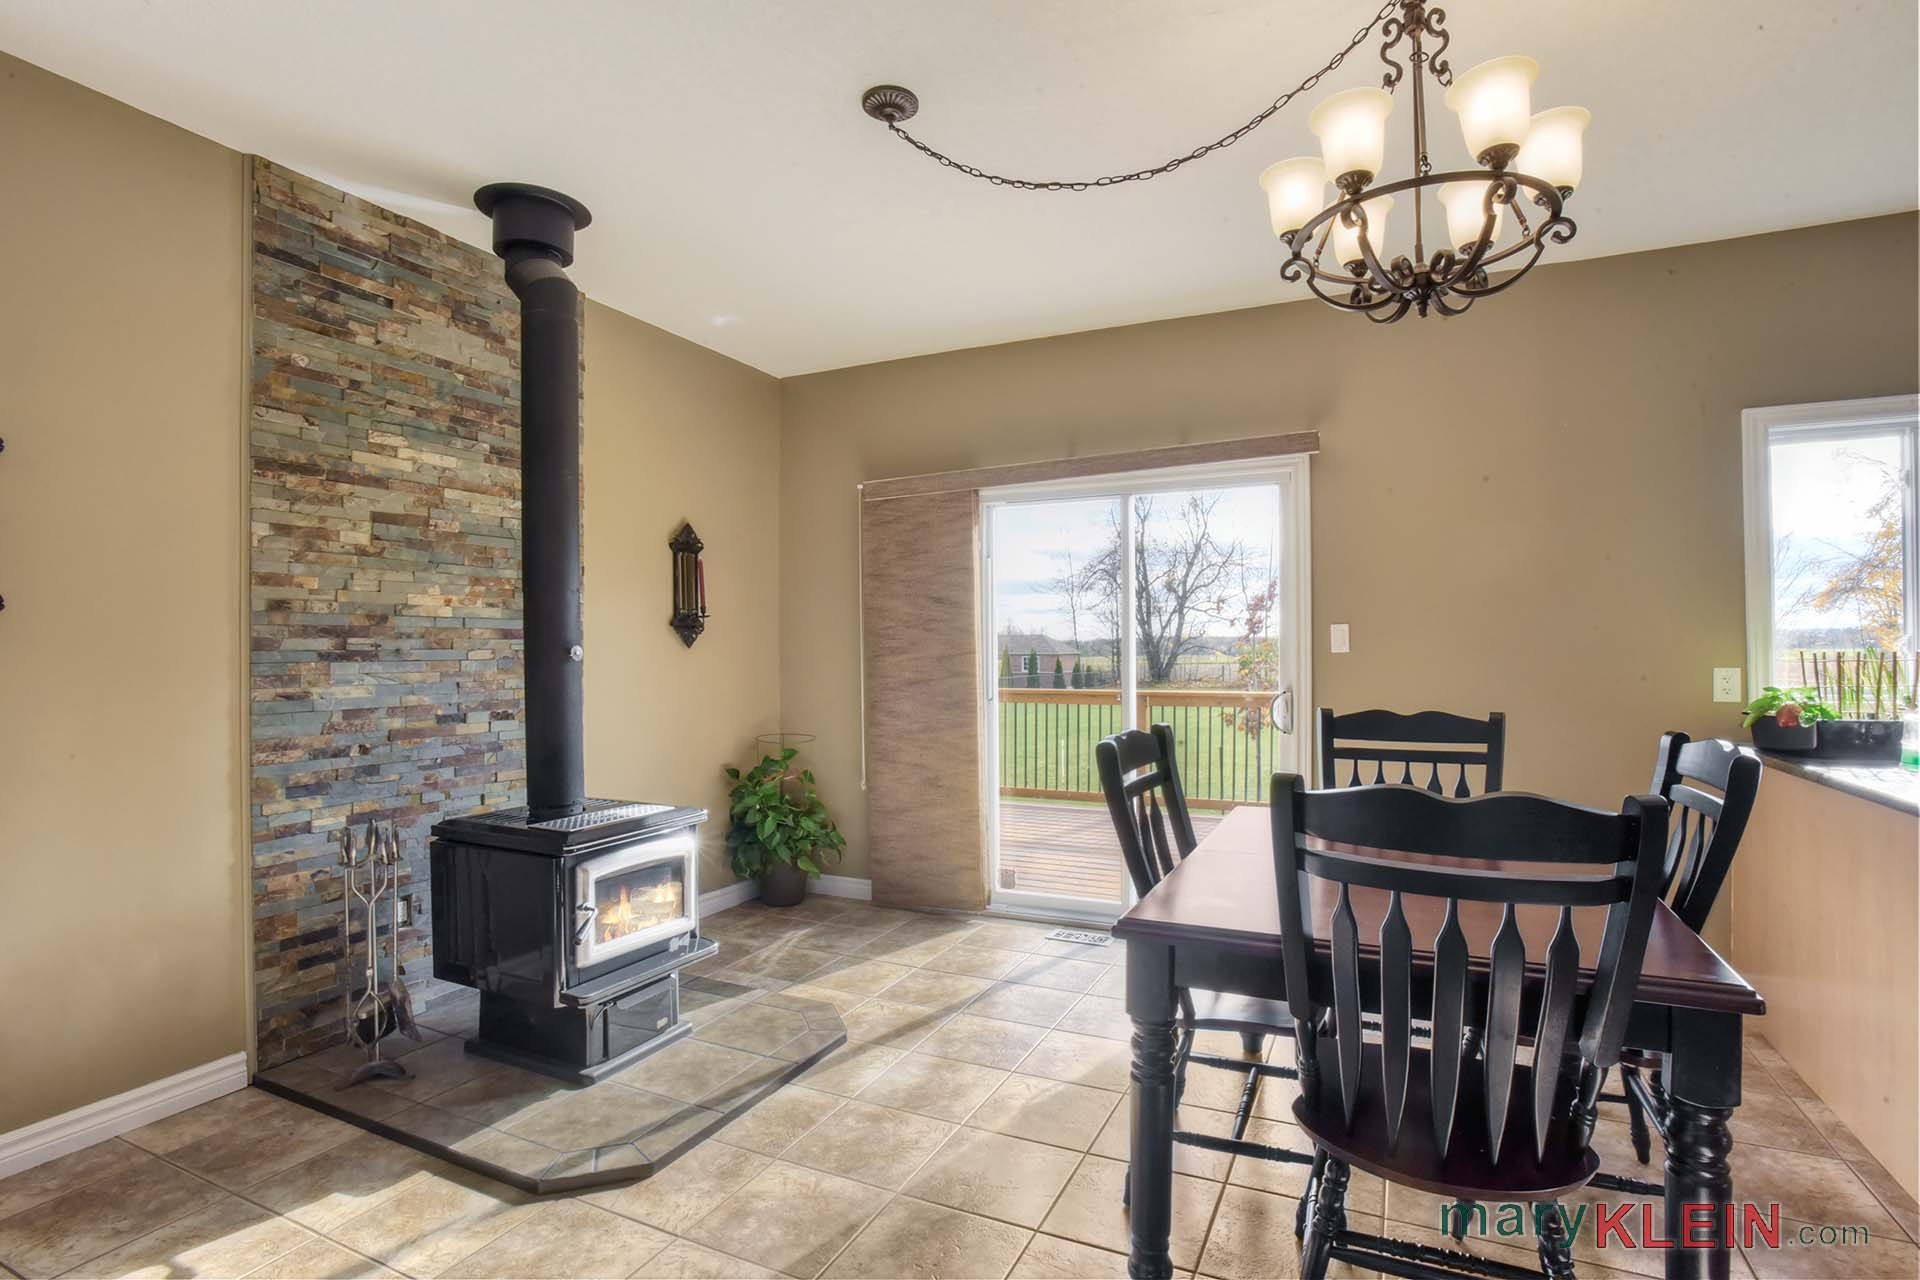 Wood stove, eat in kitchen